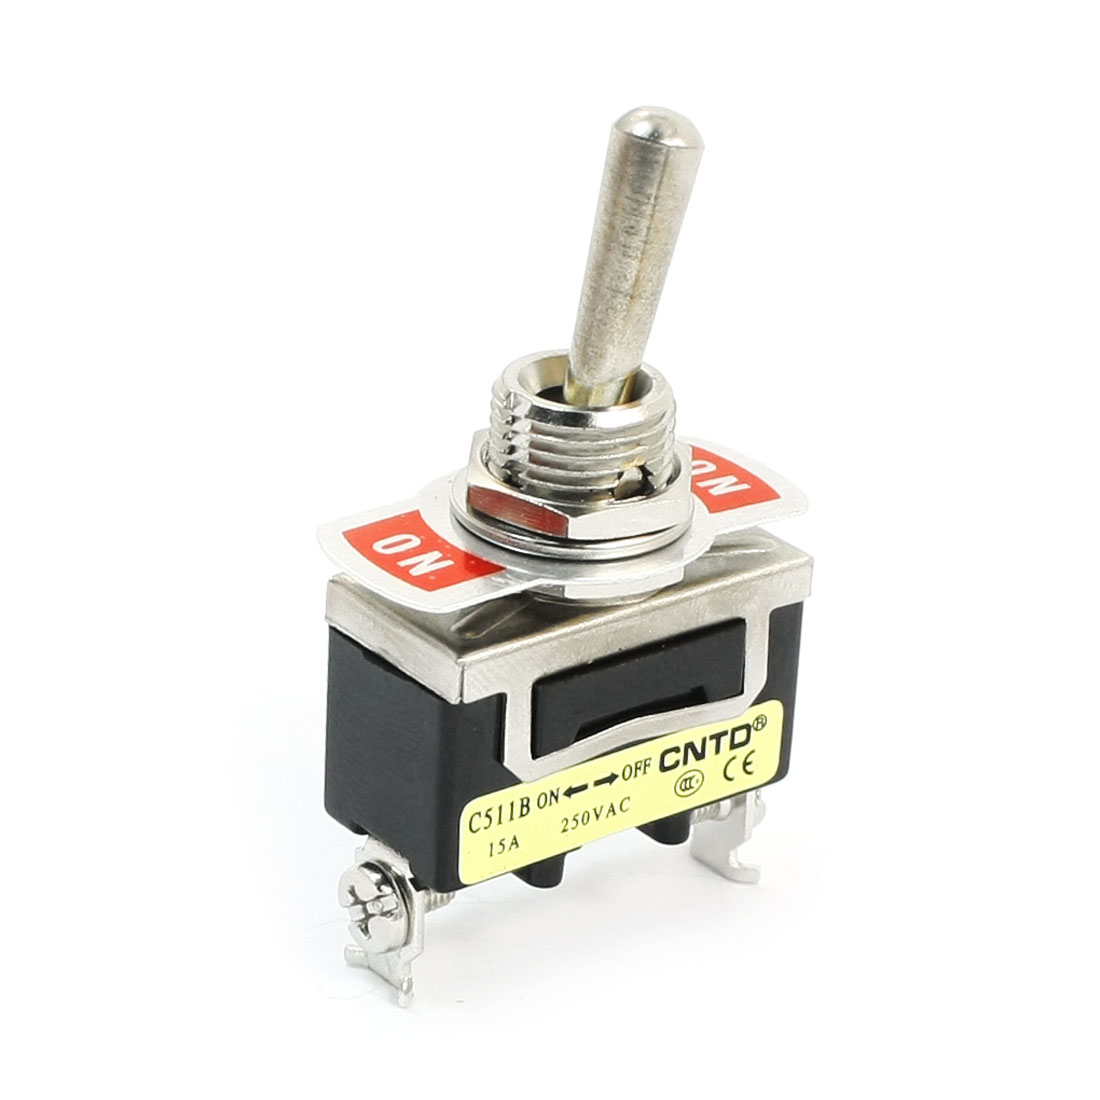 AC250V 15A SPST 2 Positions Latching Toggle Switch for Switching Light